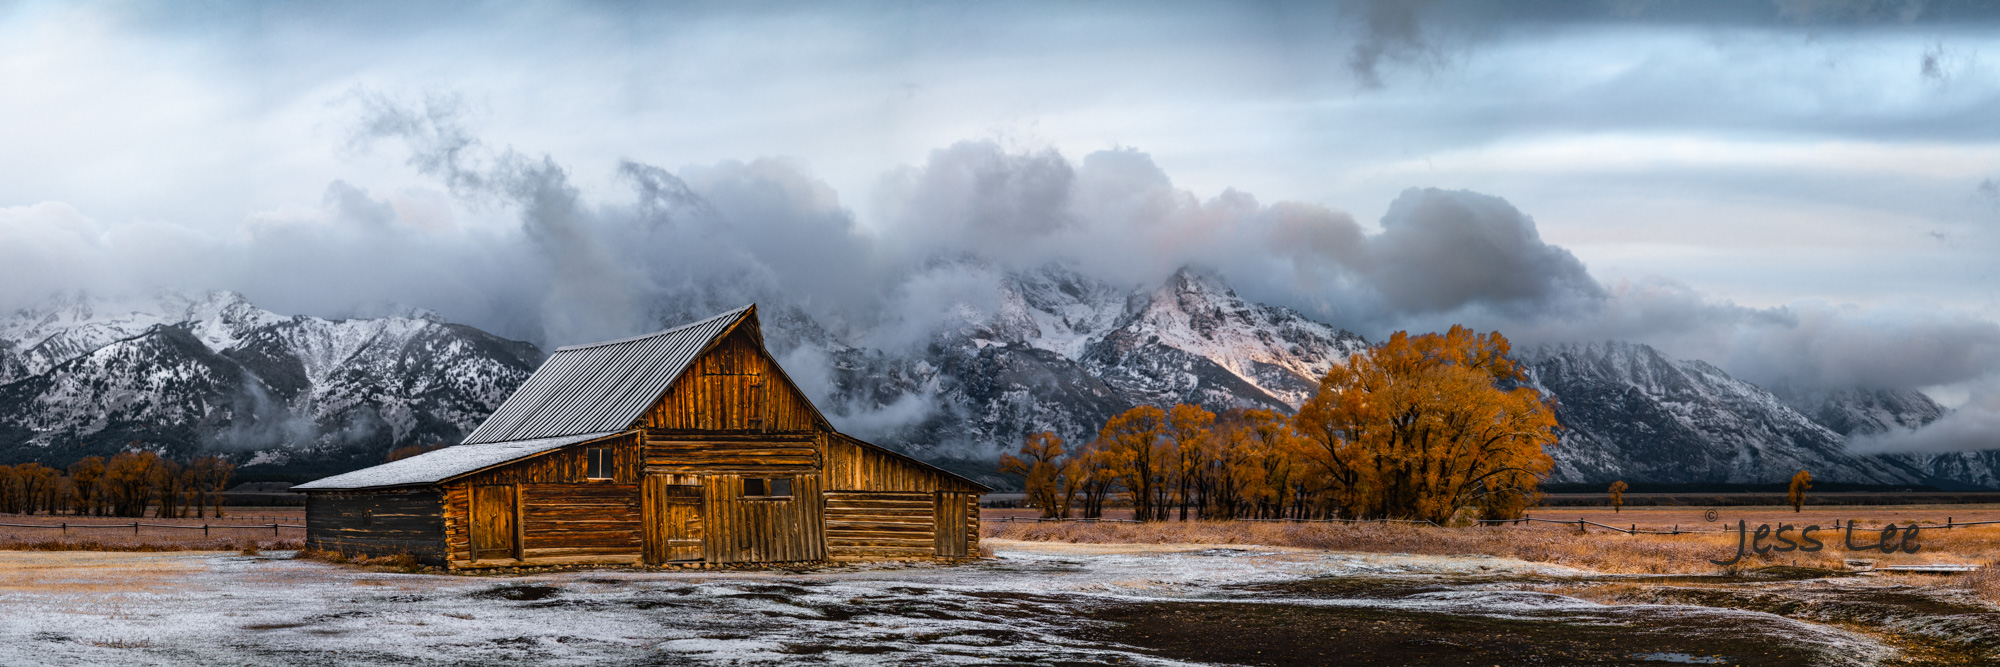 Grand Teton, Fine Art, Photo, Print, Limited Edition,  storm,  Grand Teton National Park, skiff, snow, beautiful clouds, majestic, Teton Range, storm, fine art, limited ed, photo